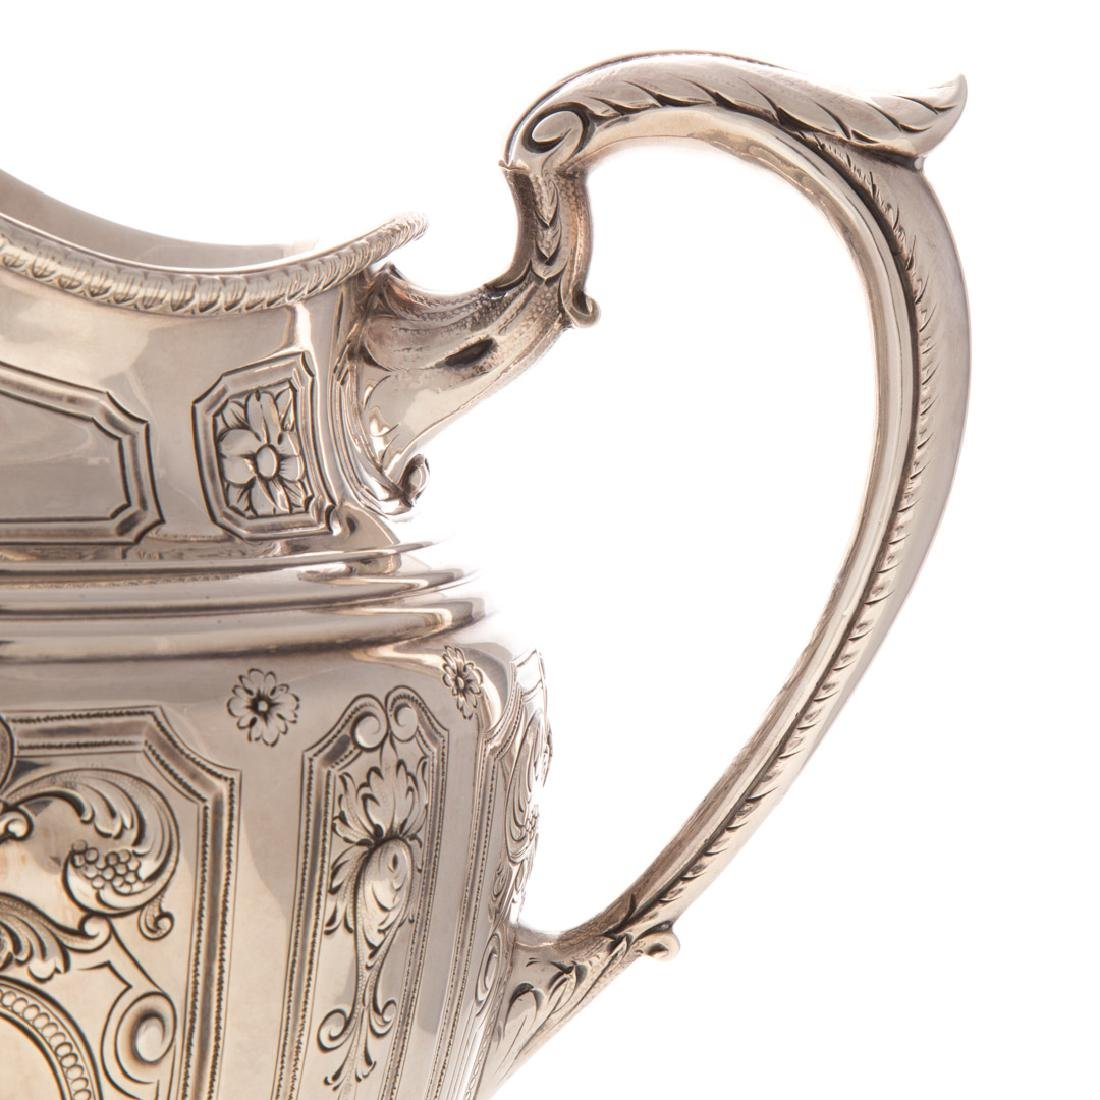 Baltimore sterling silver pitcher by Schofield - 5